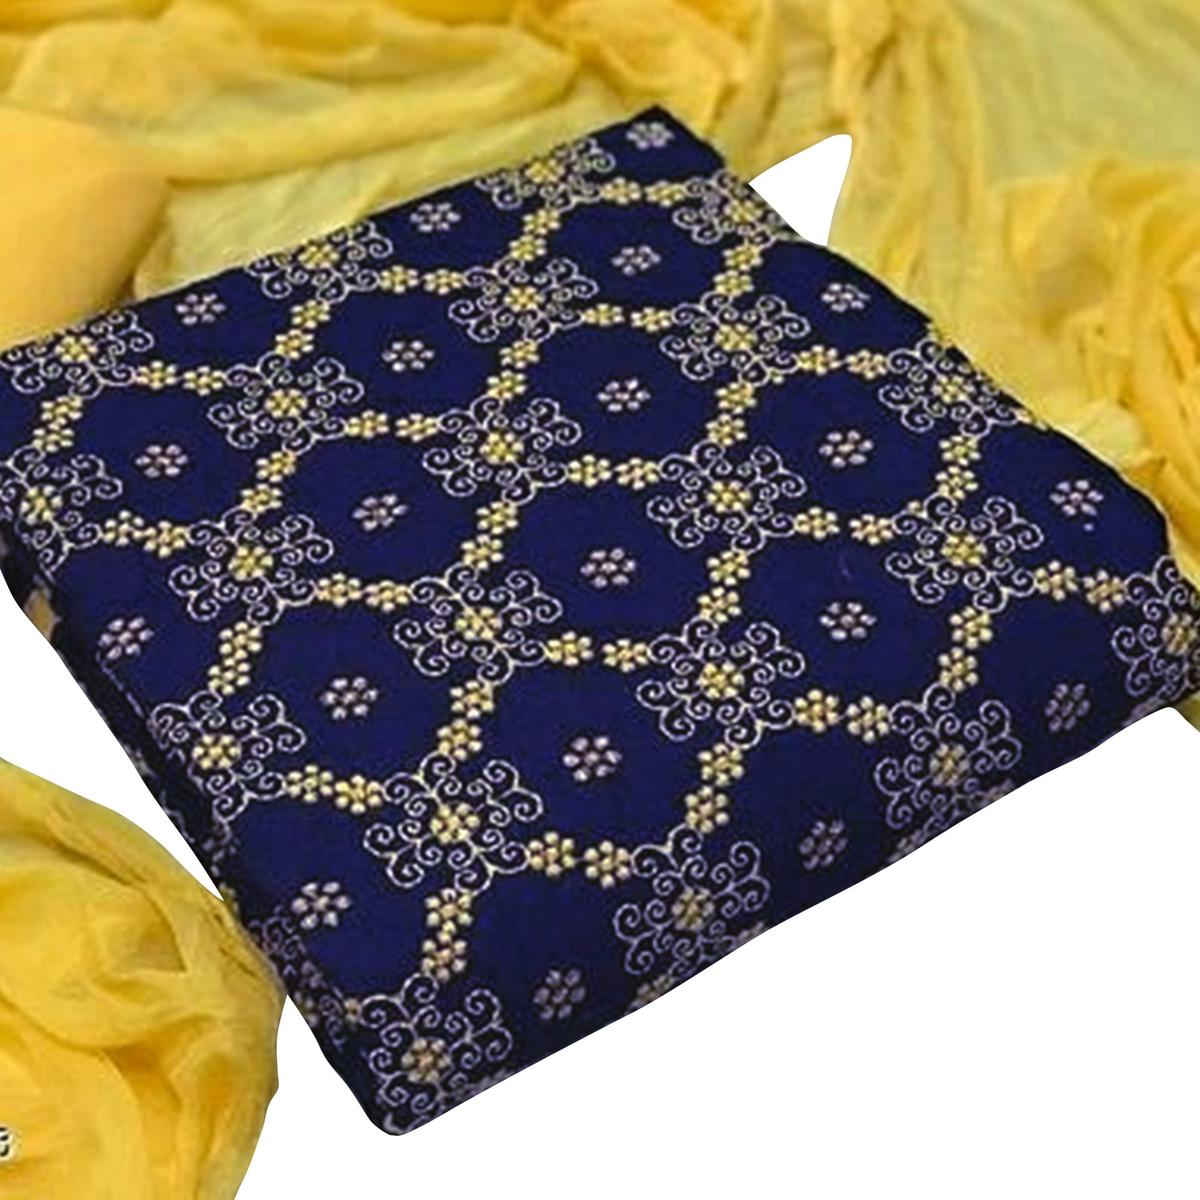 Attractive Navy Blue-Yellow Colored Partywear Embroidered Cotton Dress Material